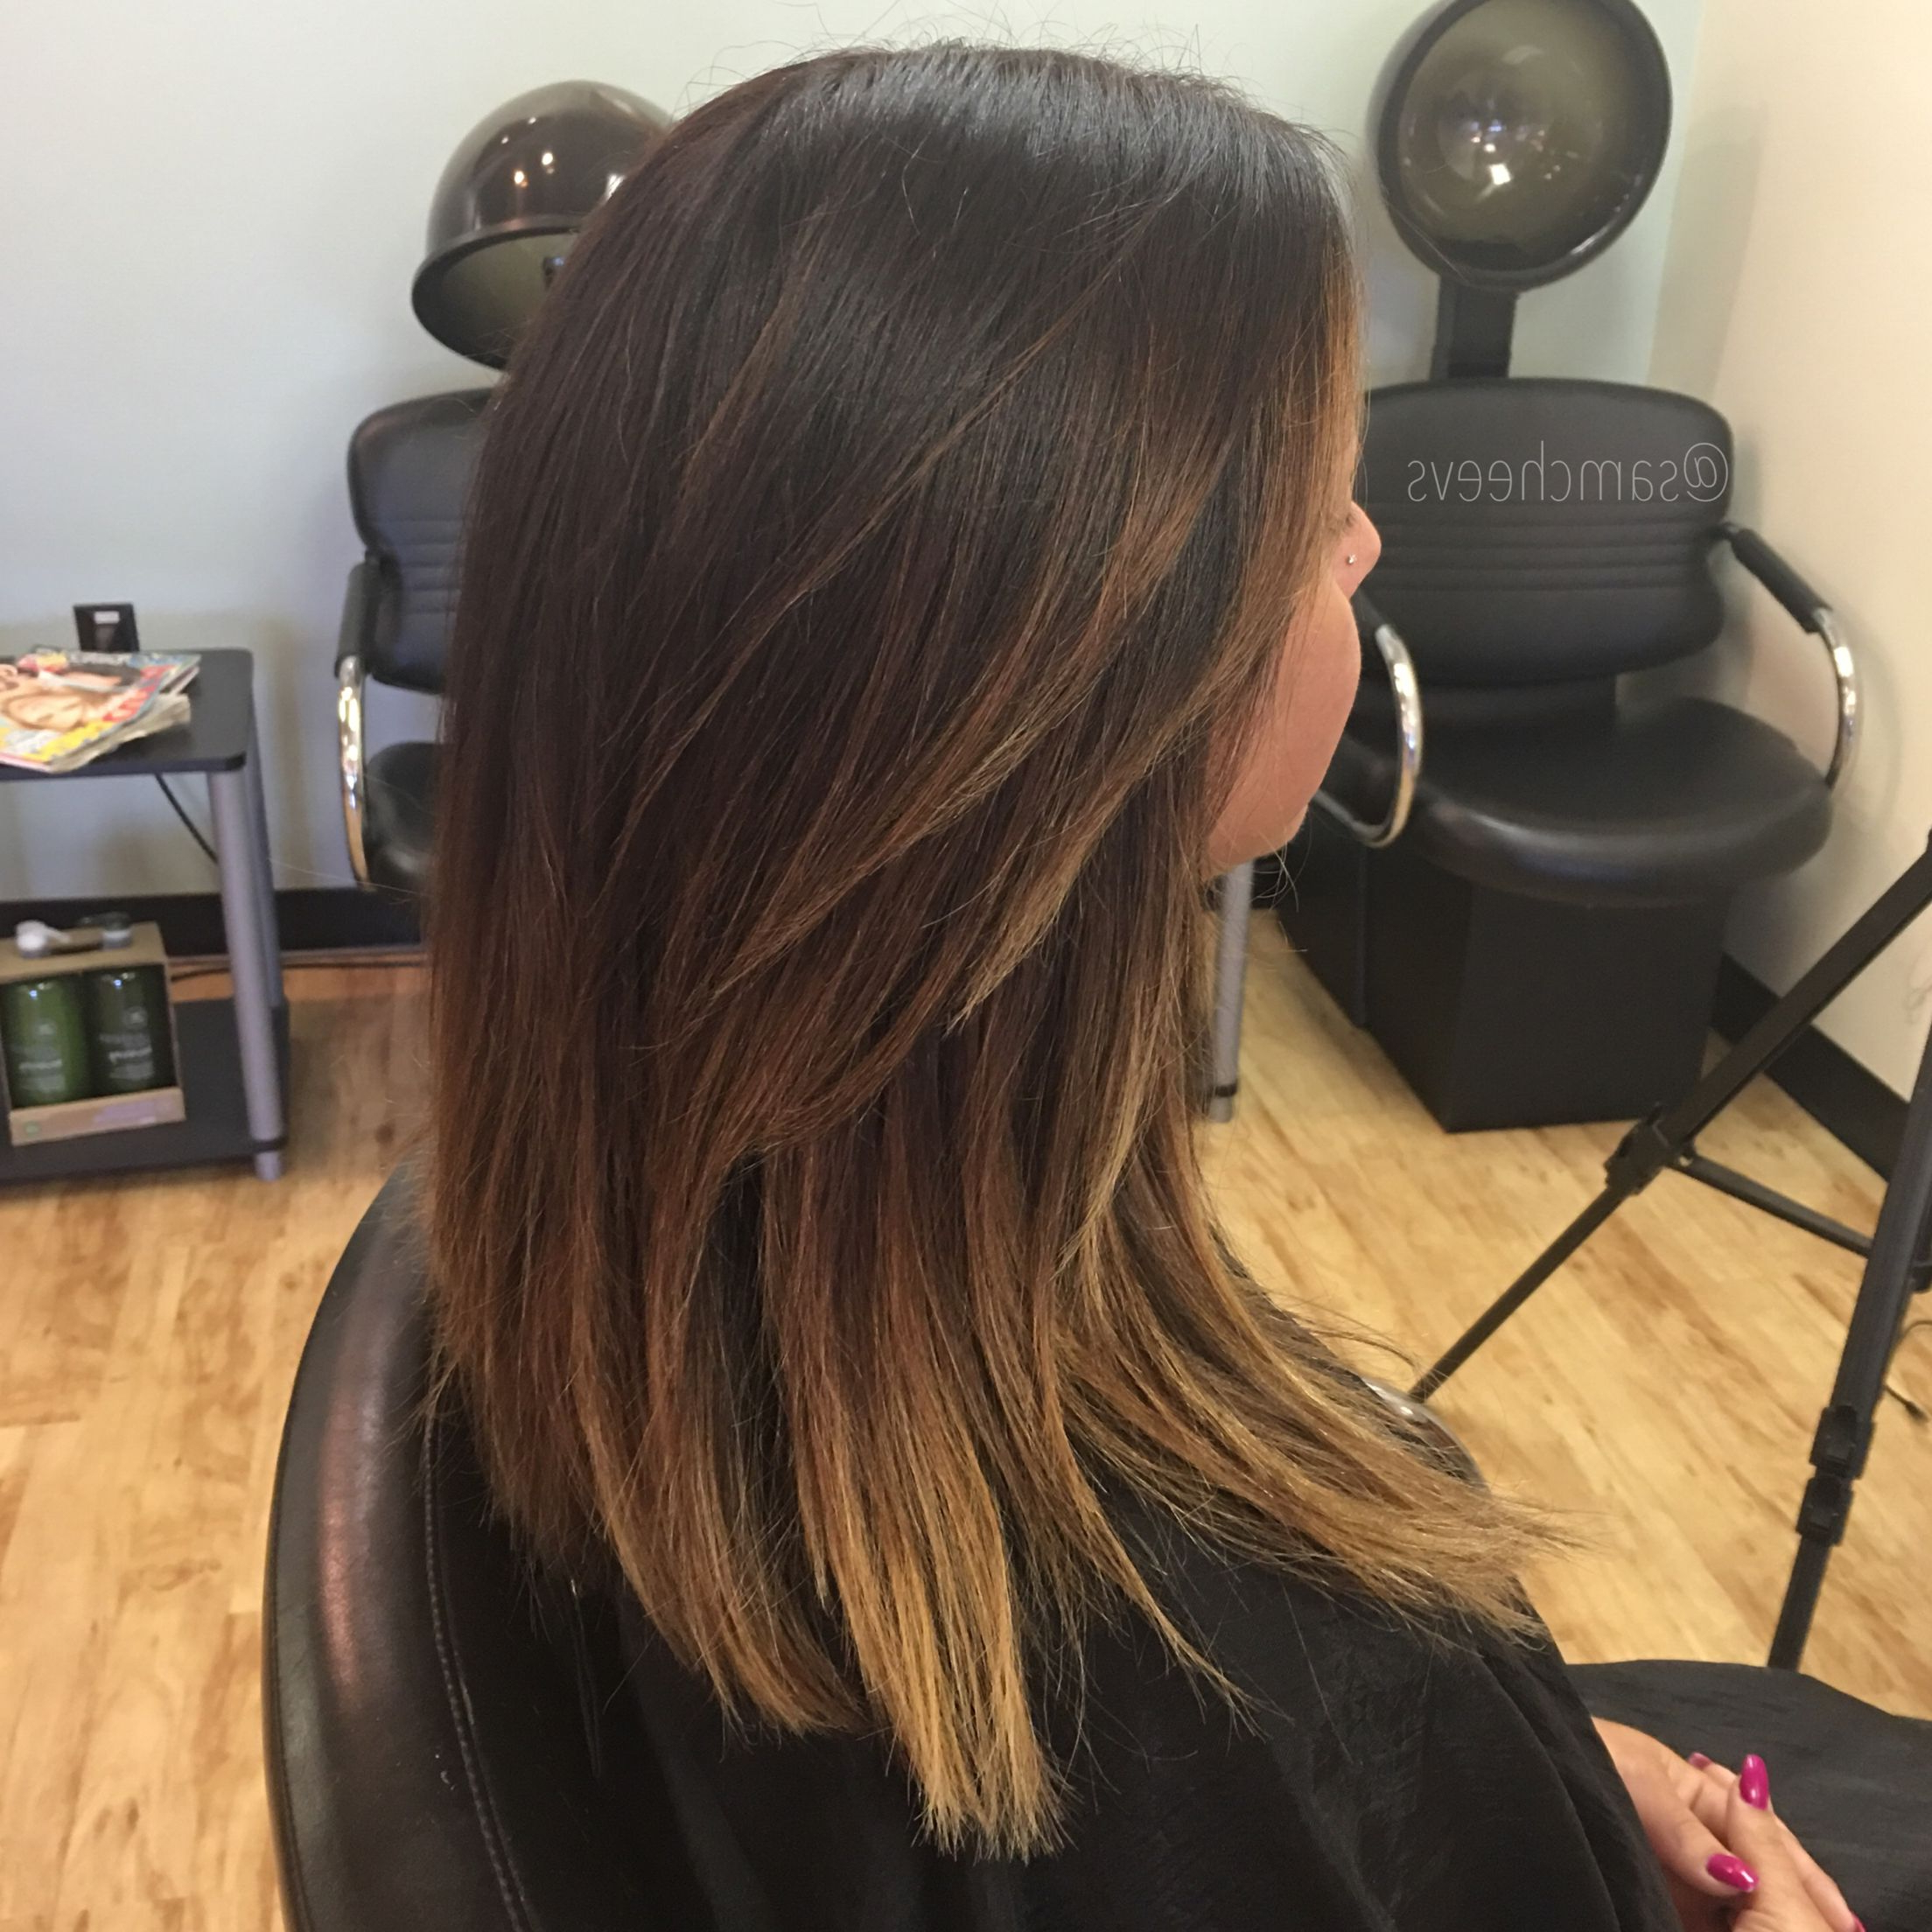 Dark Hair Ombré .summer Hair Styles For Brown Hair. Medium Length Regarding Widely Used Medium Hairstyles For Summer (Gallery 15 of 20)